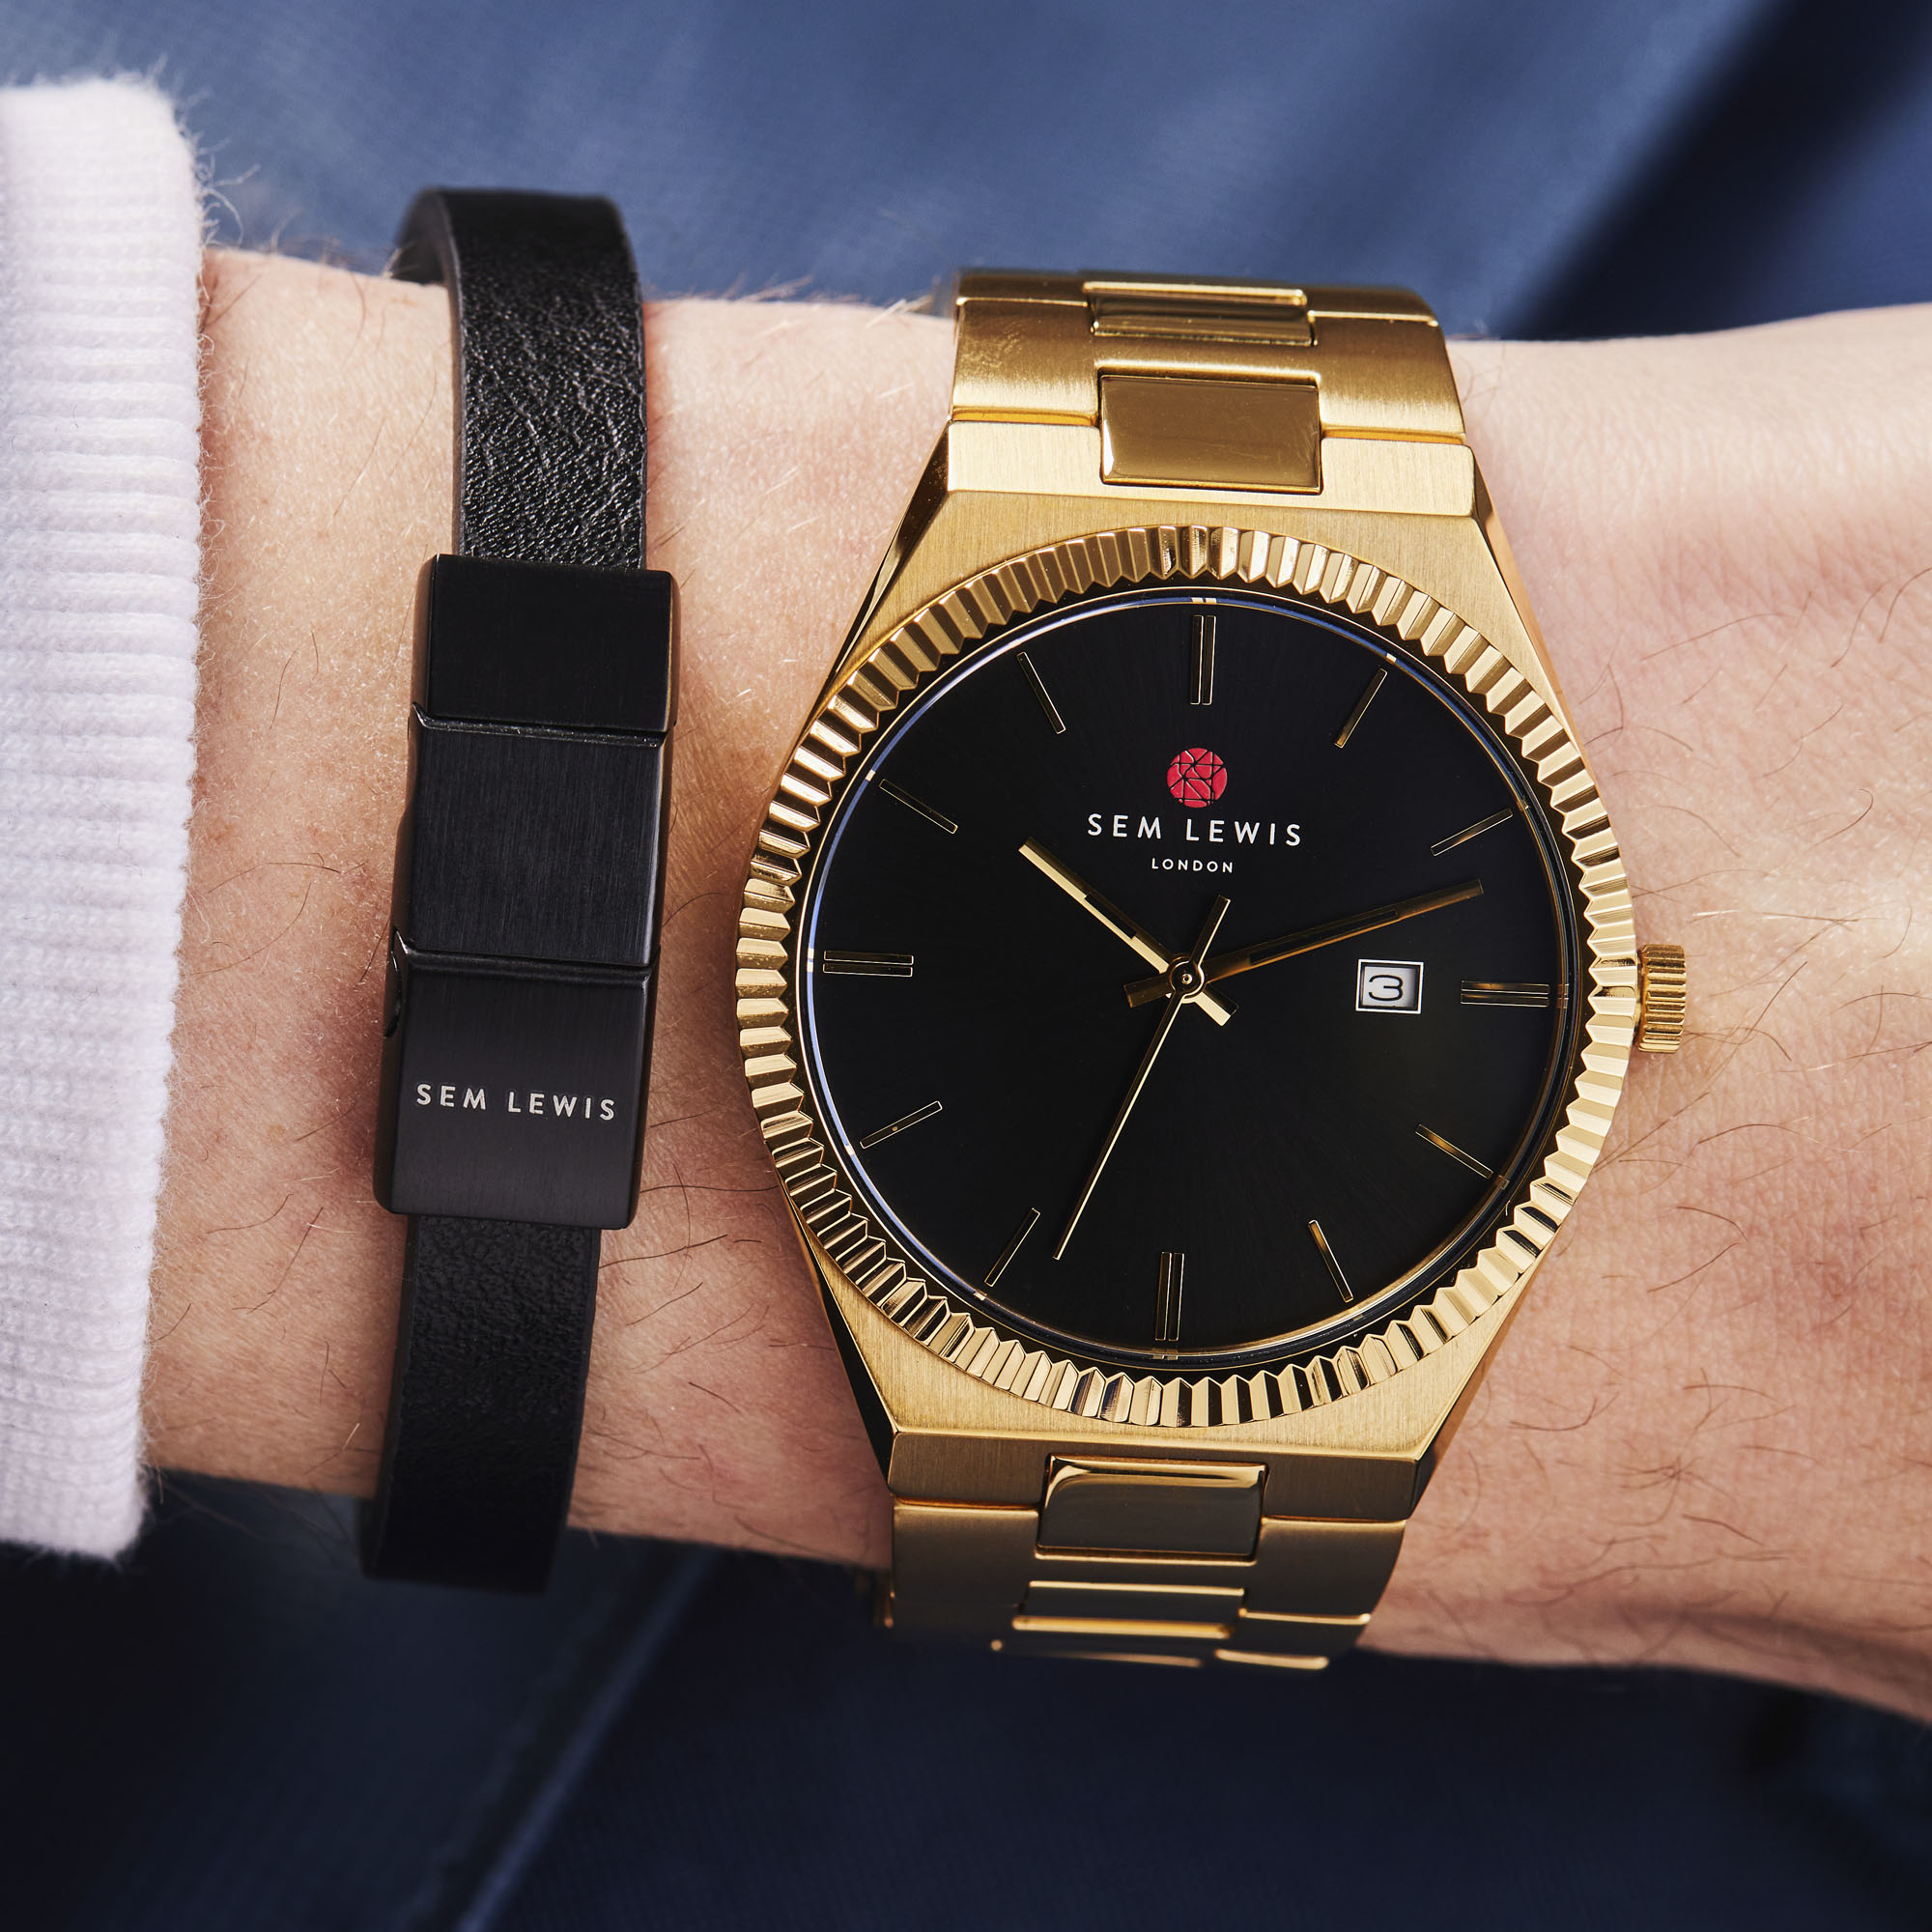 Sem Lewis Aldgate watch gold colored and black